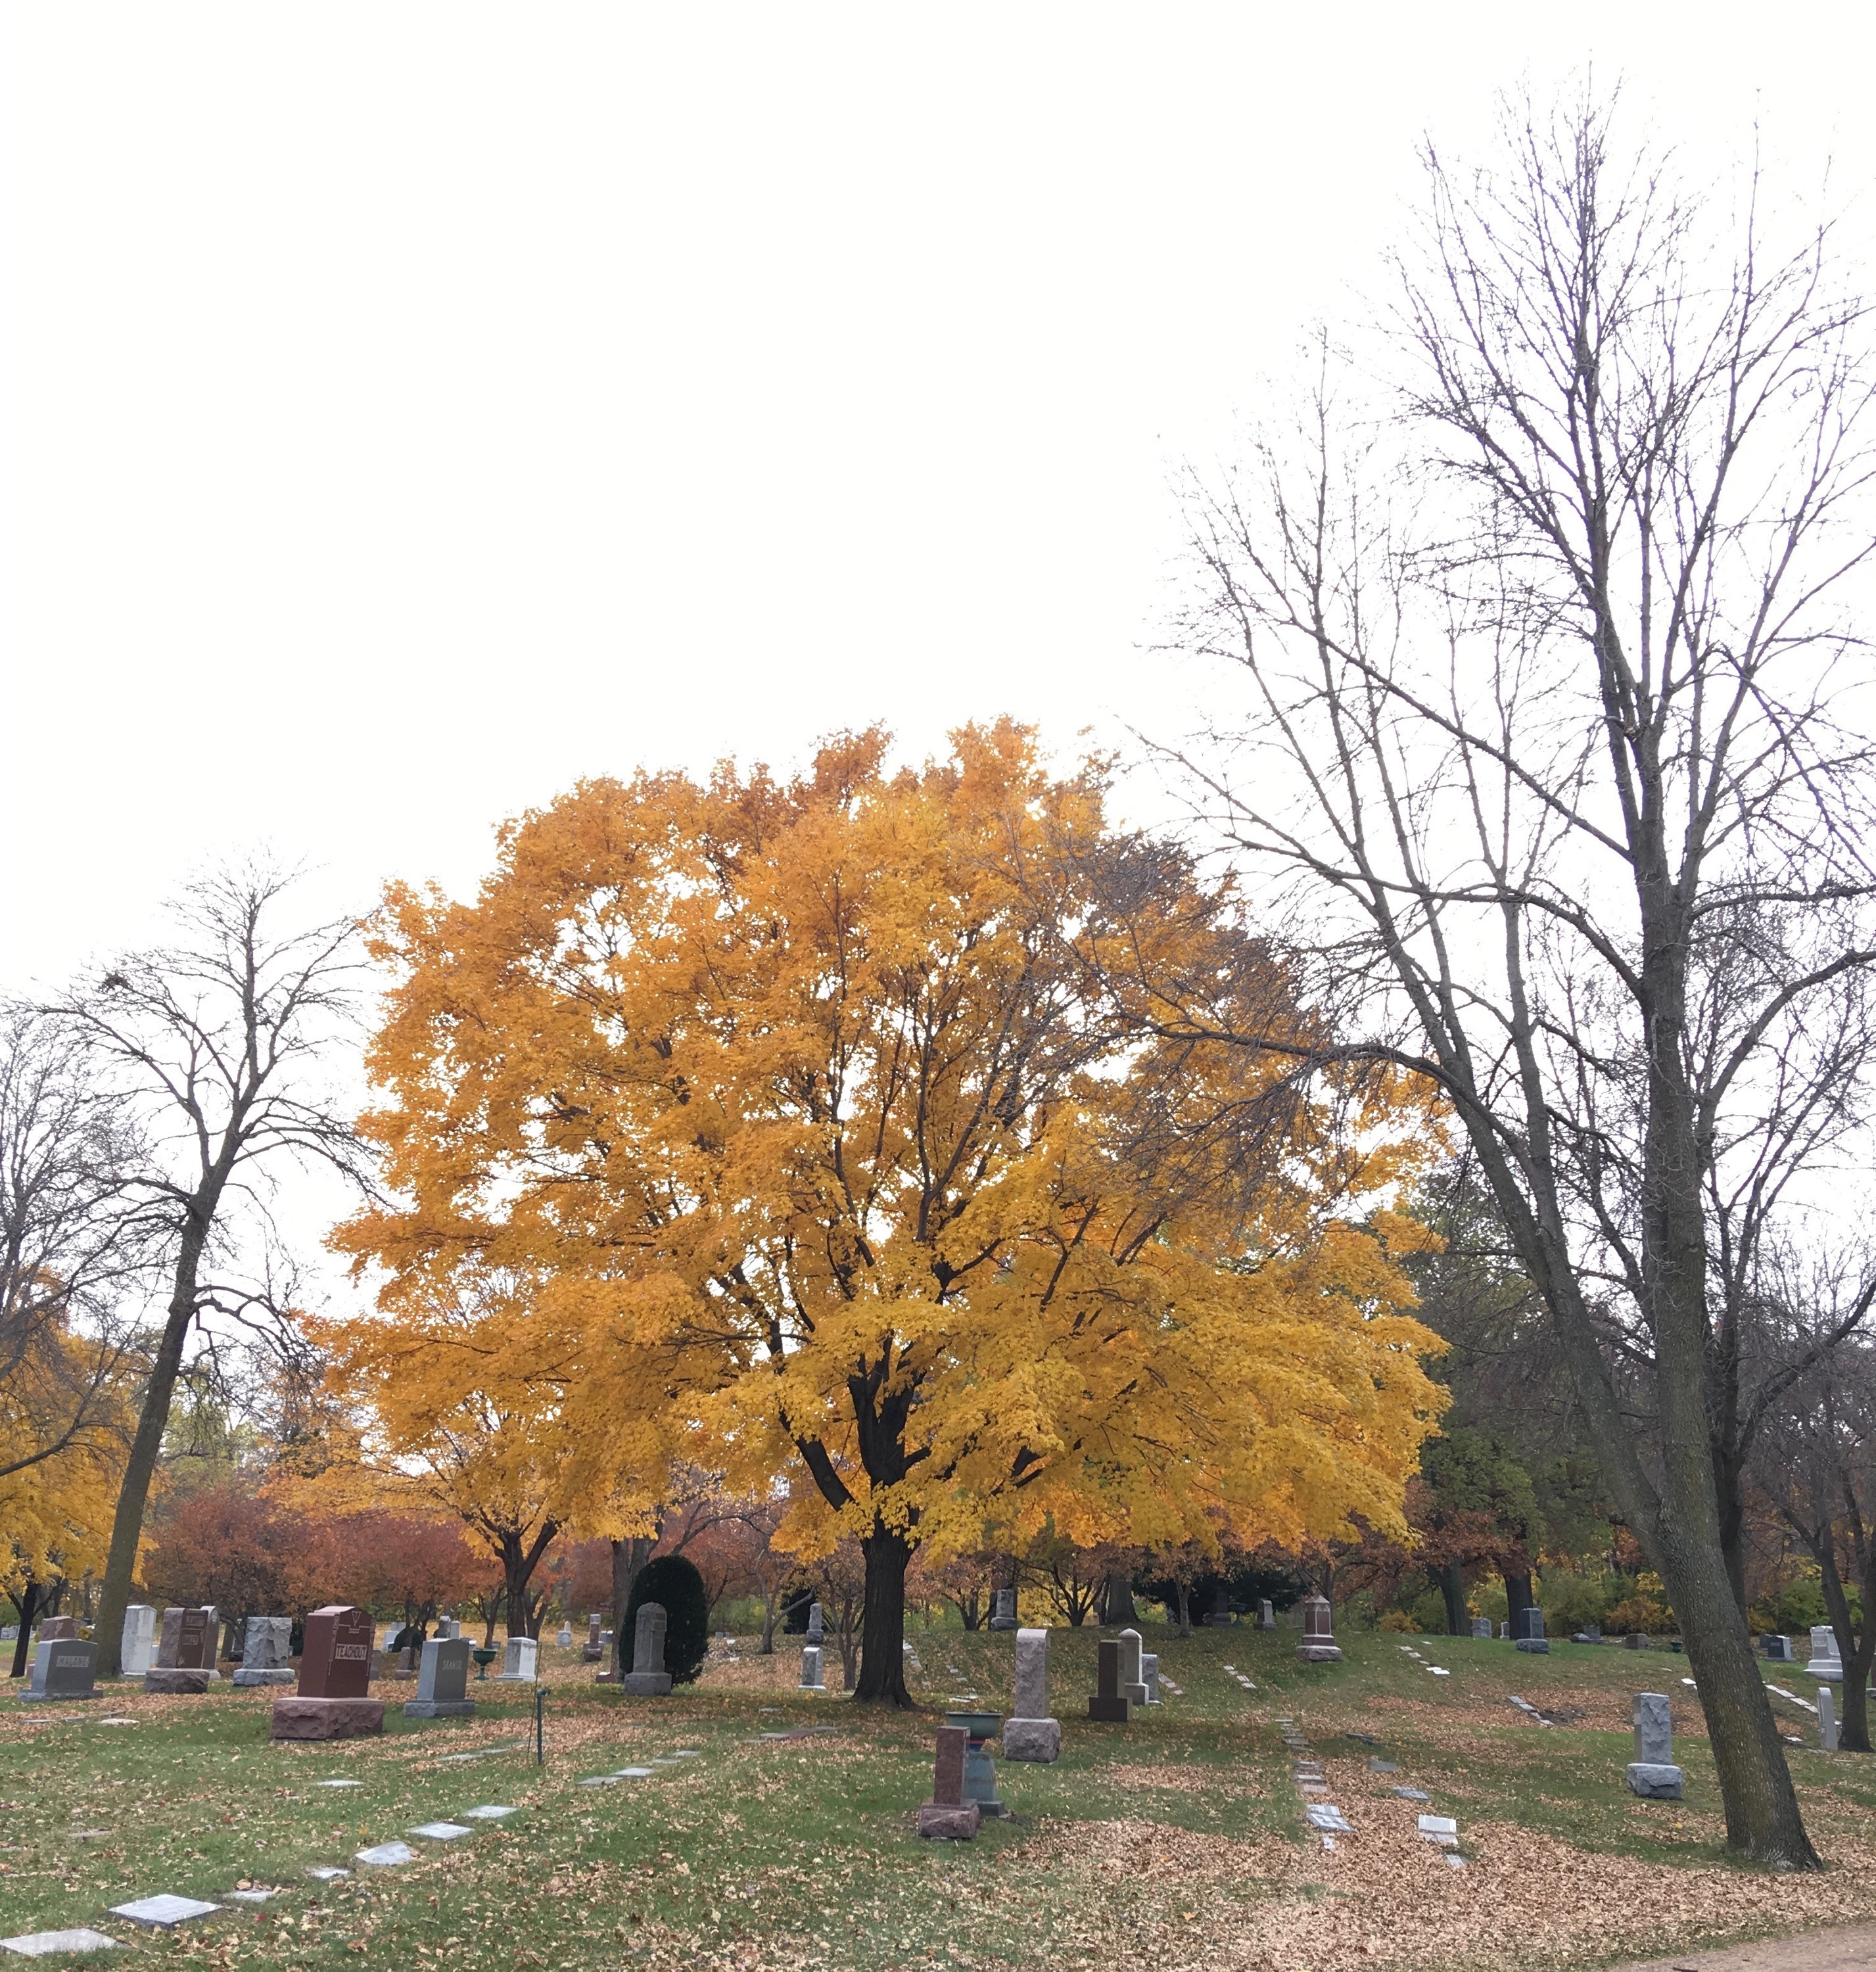 Maple, fully yellow, surrounded by bare trees and cemetery, under a cloudy sky